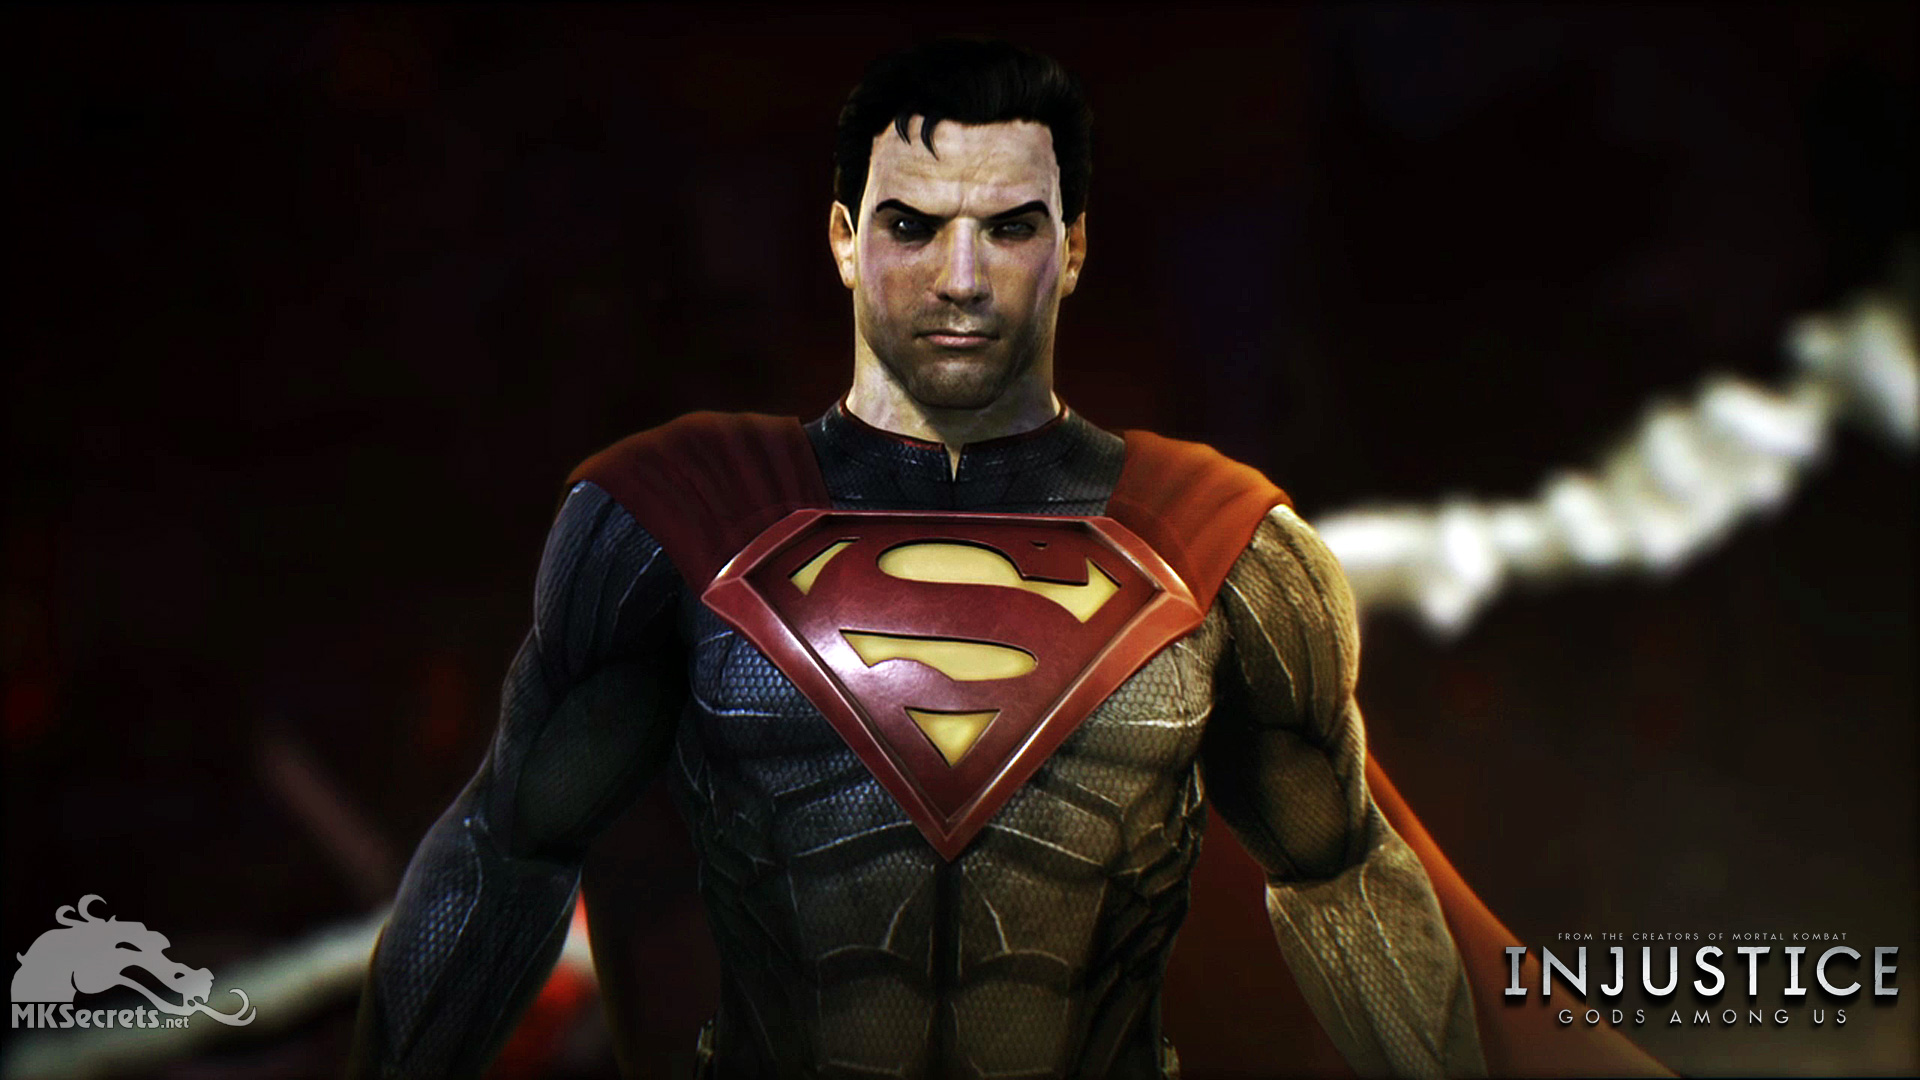 Injustice Gods Among Us Review Geek Insider